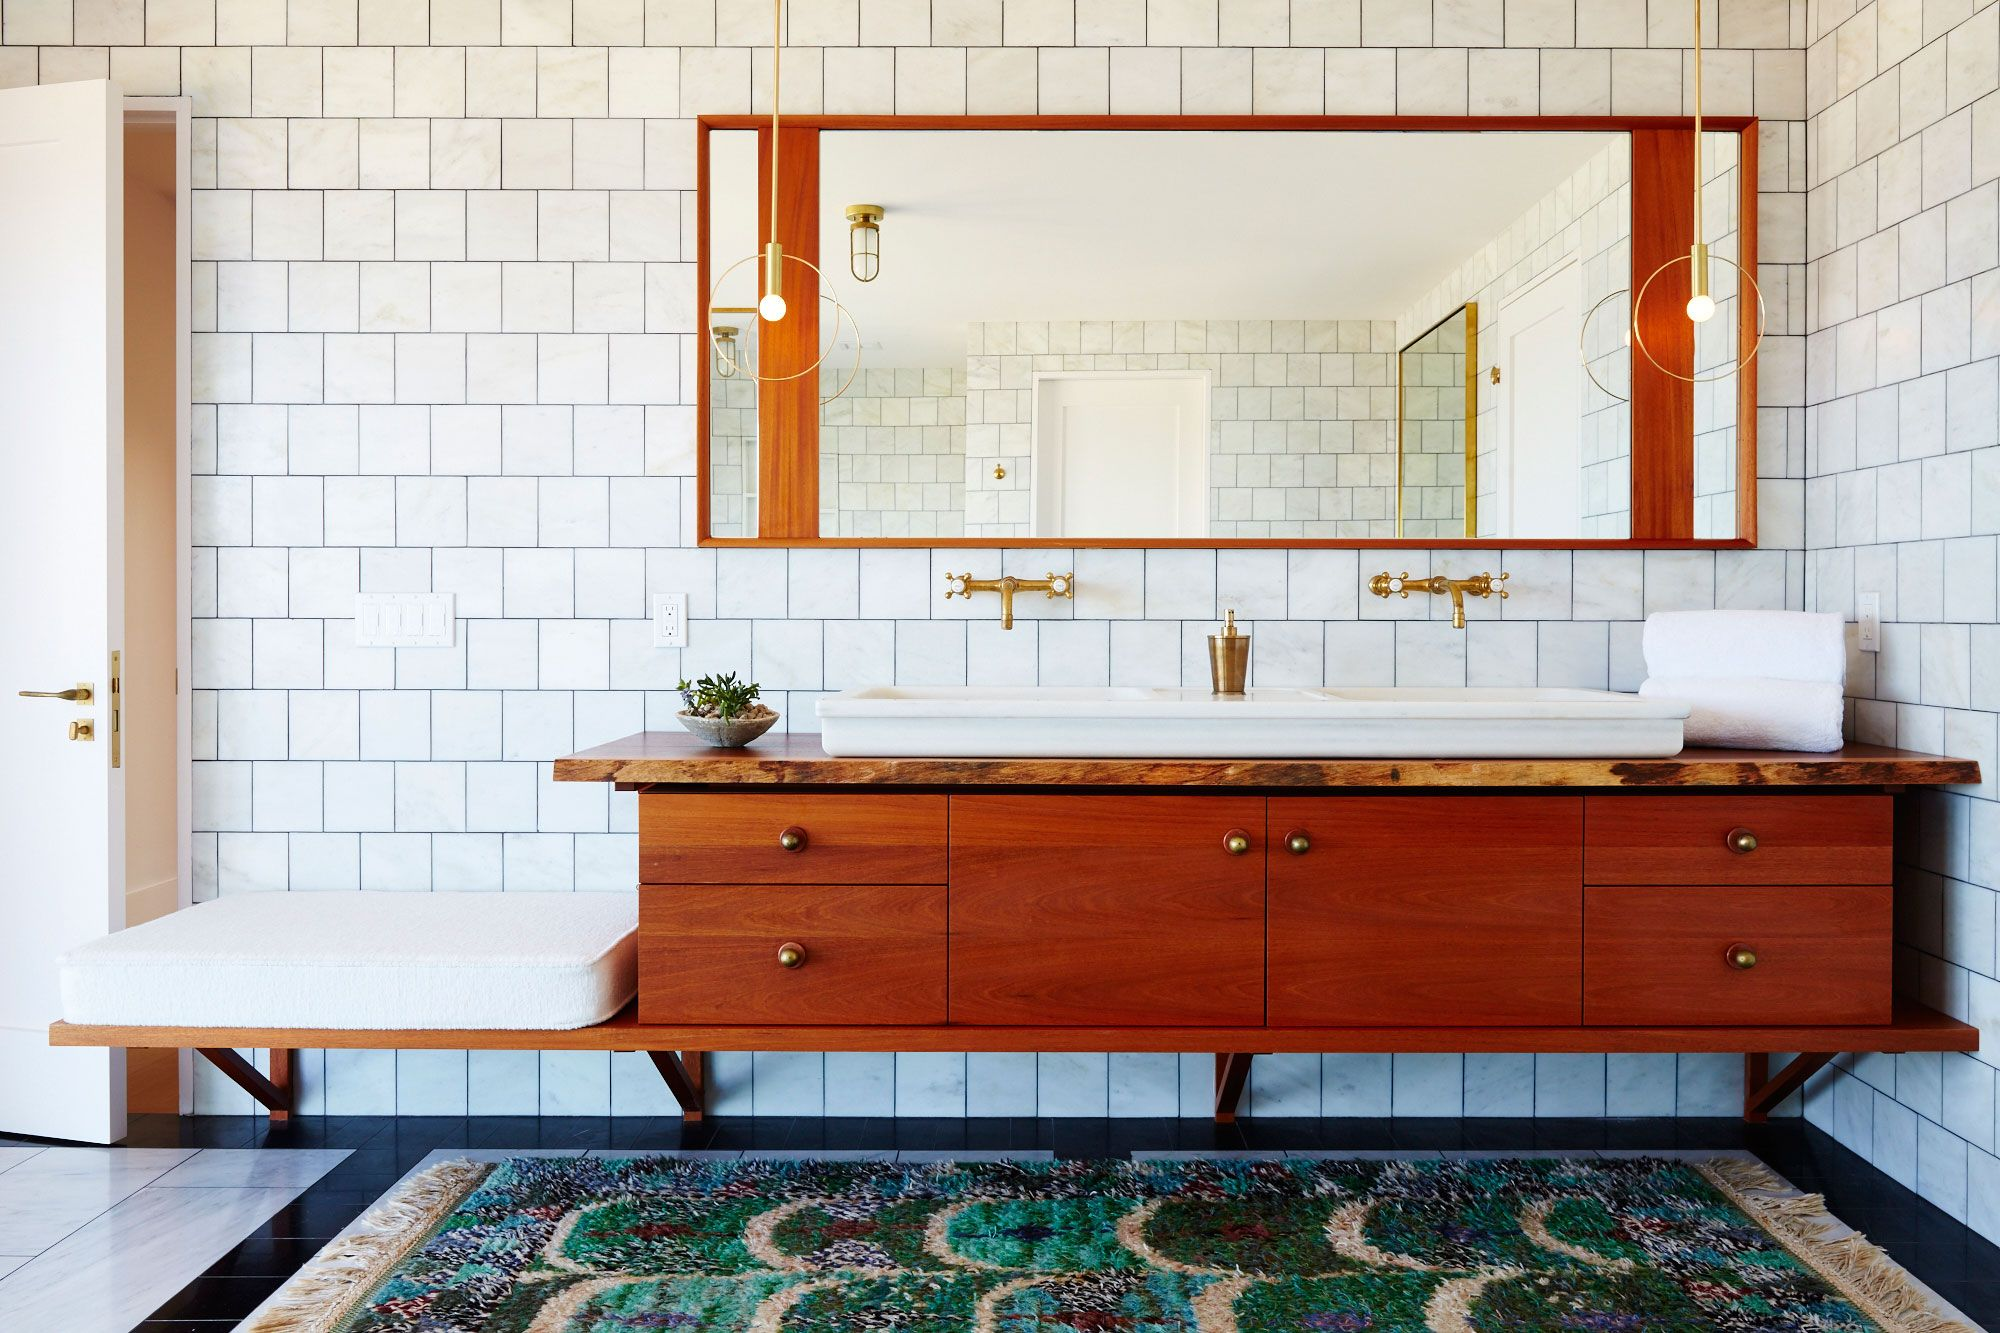 66 Bathroom Ideas We're Legit Obsessed With